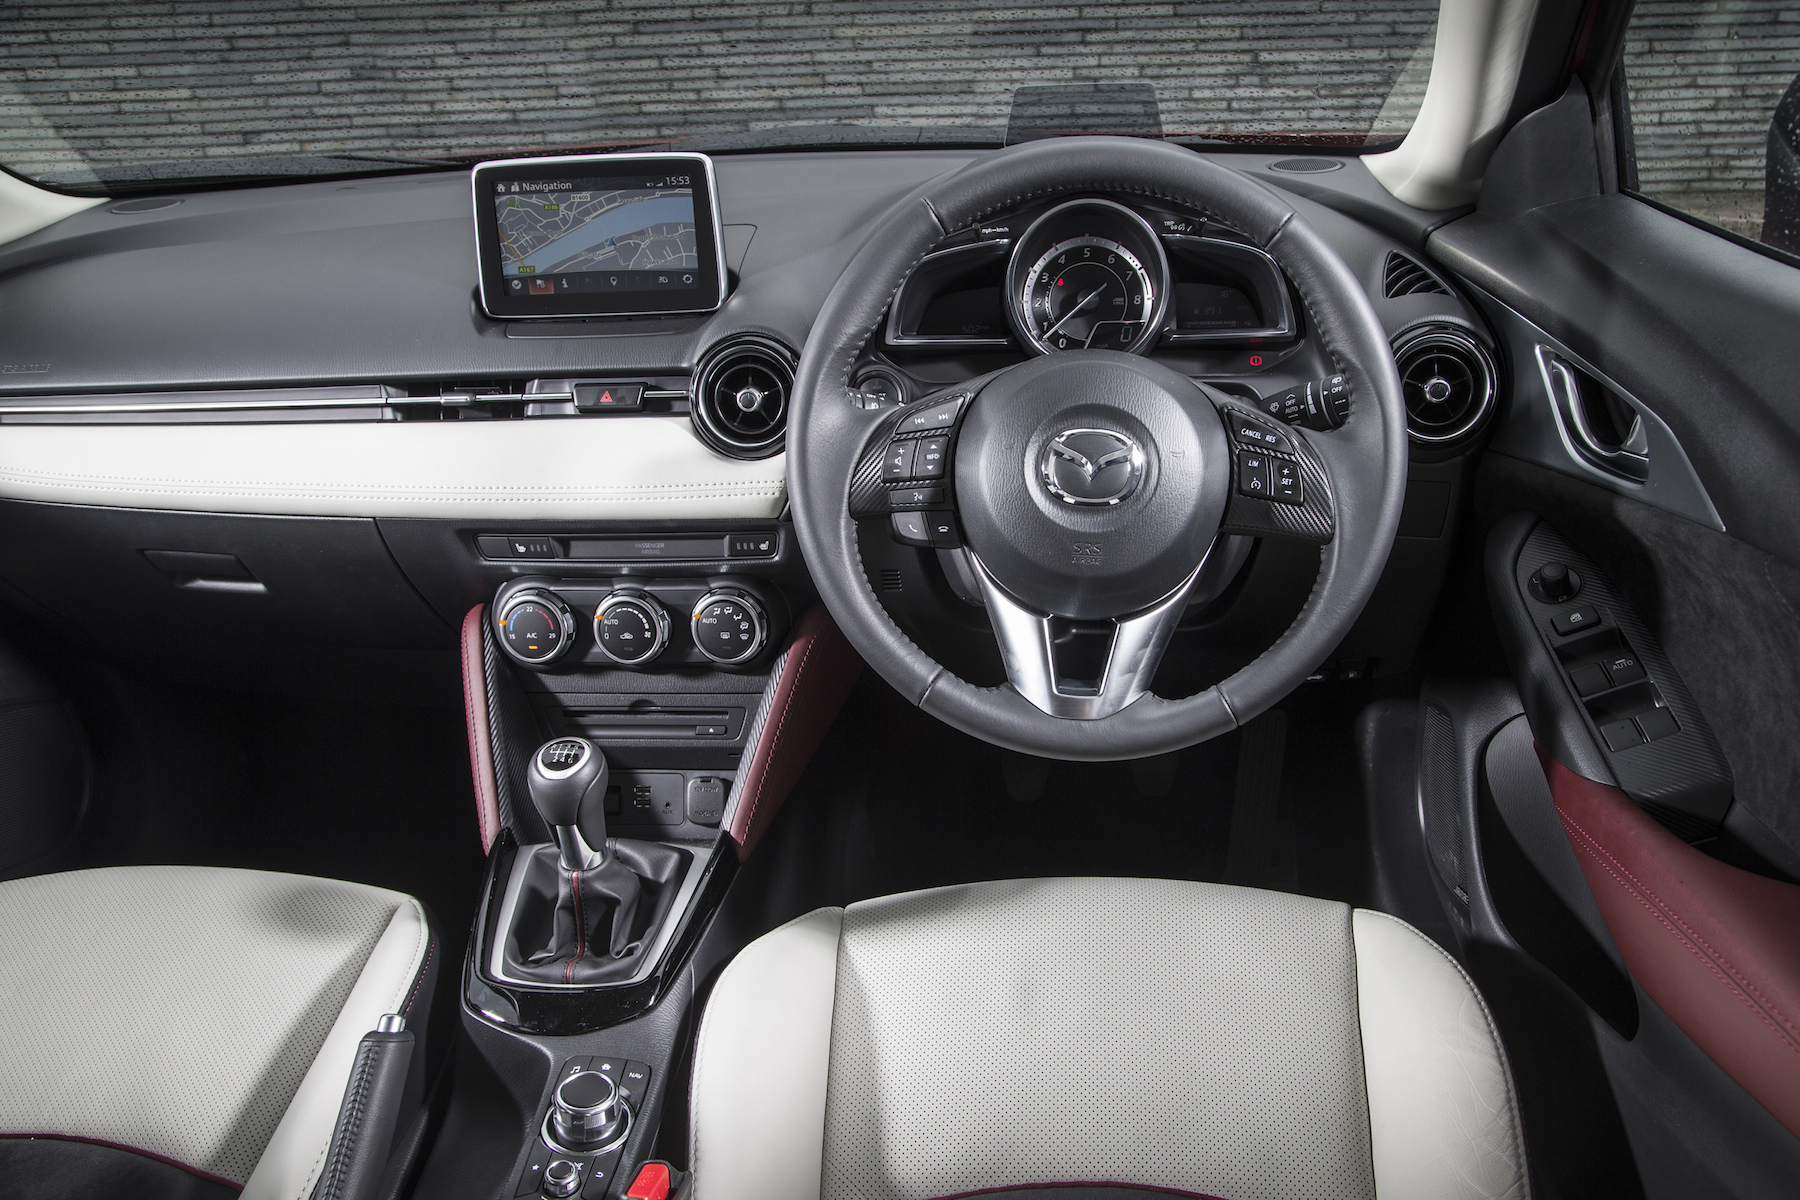 Mazda CX-3: On the inside